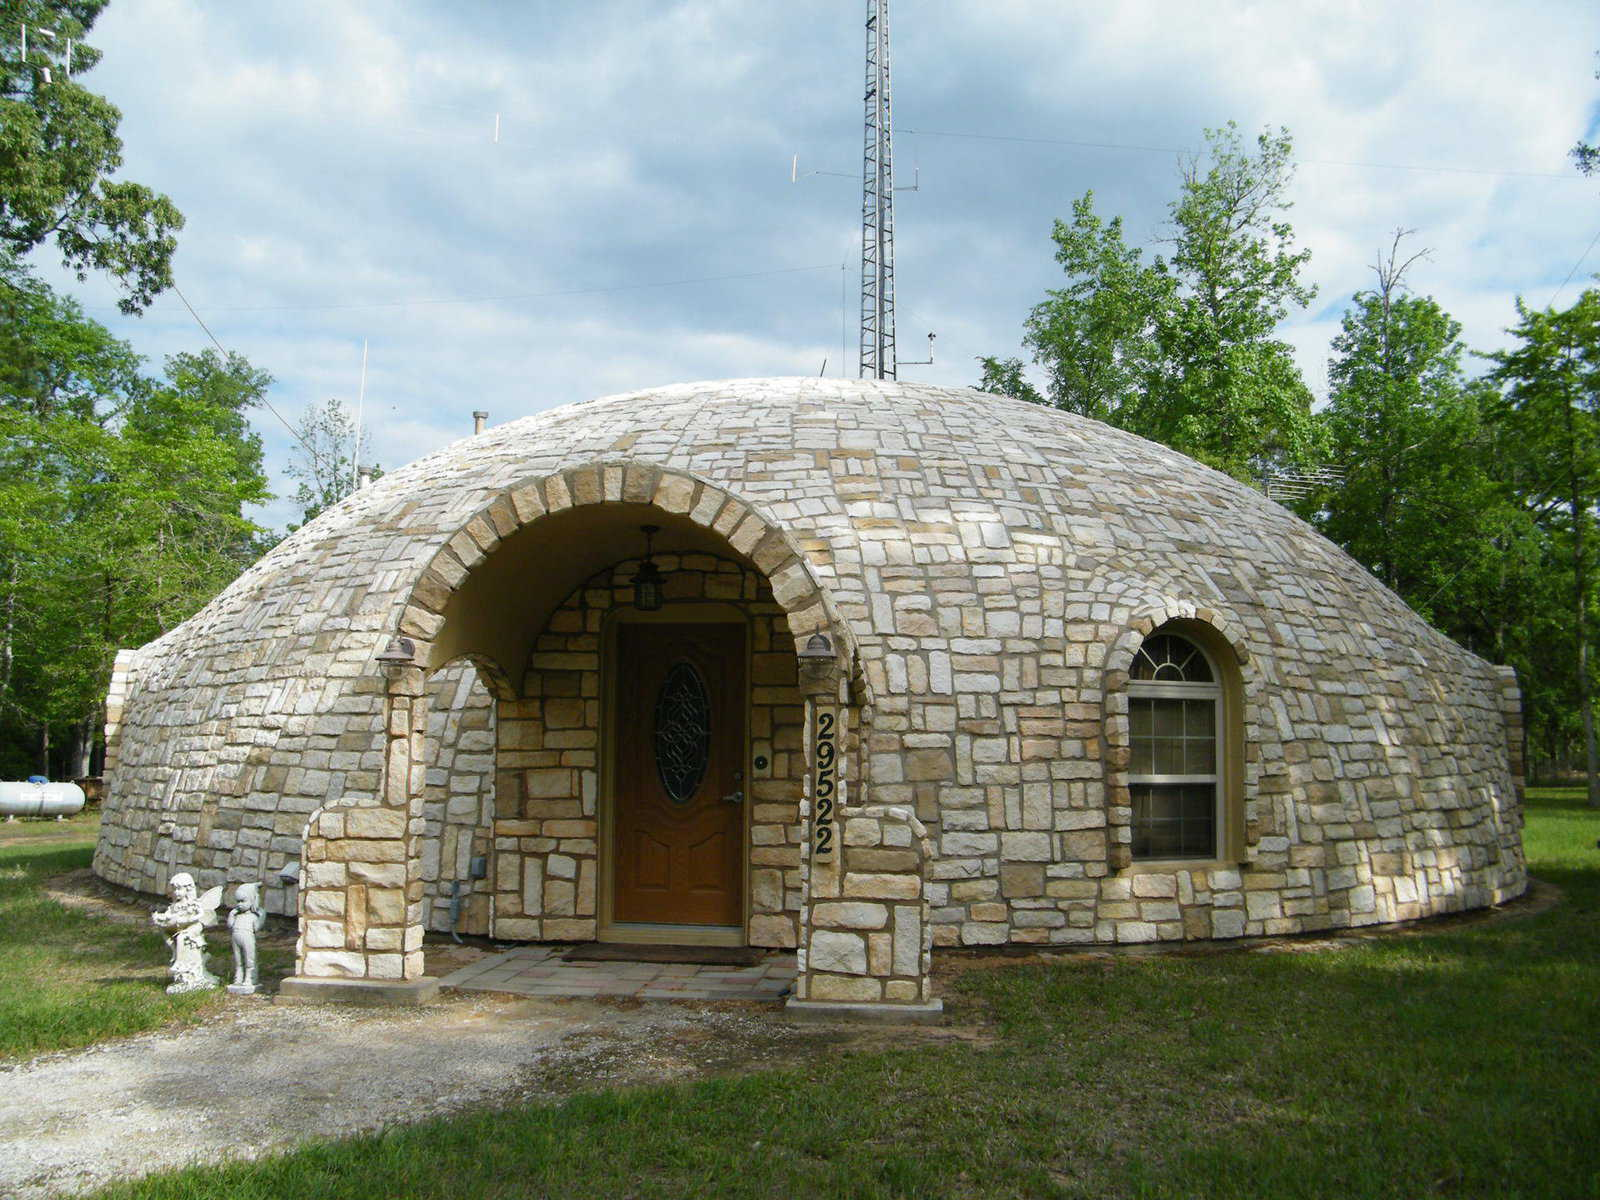 Dome Home Design Ideas: The Tassell Dome: Rocked By Hand And Beautiful